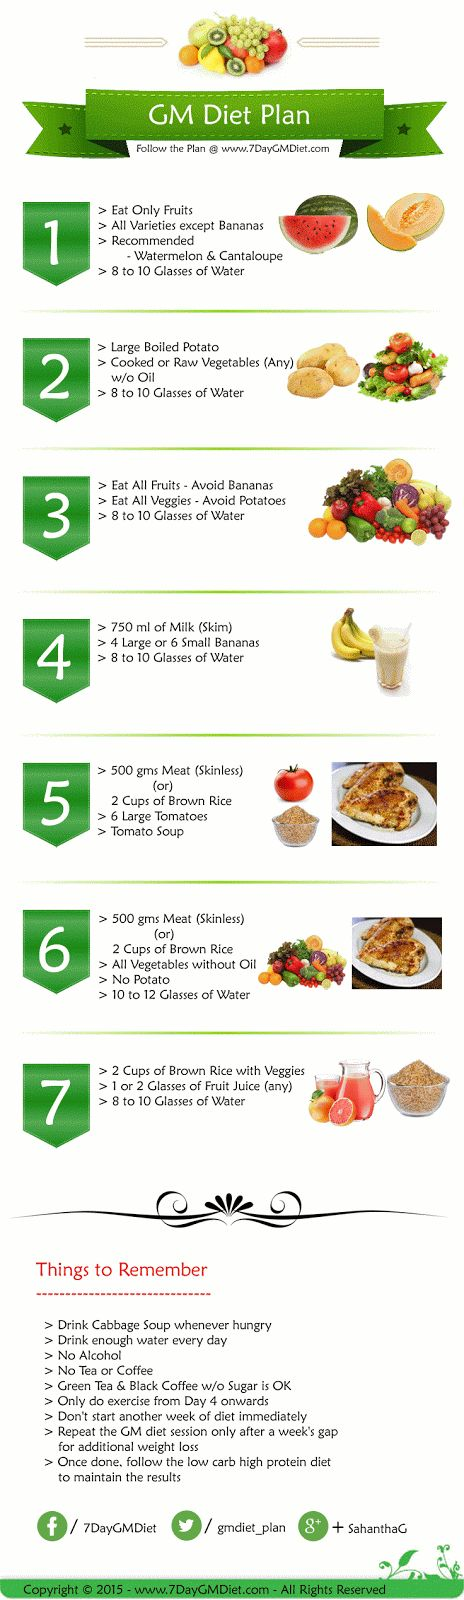 GM Diet Chart: Find the GM Diet Plan PDF Printable Version Free Download.  General Motors diet aka GM Diet Chart helps you lose weight without exercise. You don't have to worry about any special workouts. Simply, follow the GM diet program and lose up to 10 pounds in a week safely.  #GMDiet #GMDietMenu #GMDietPlan